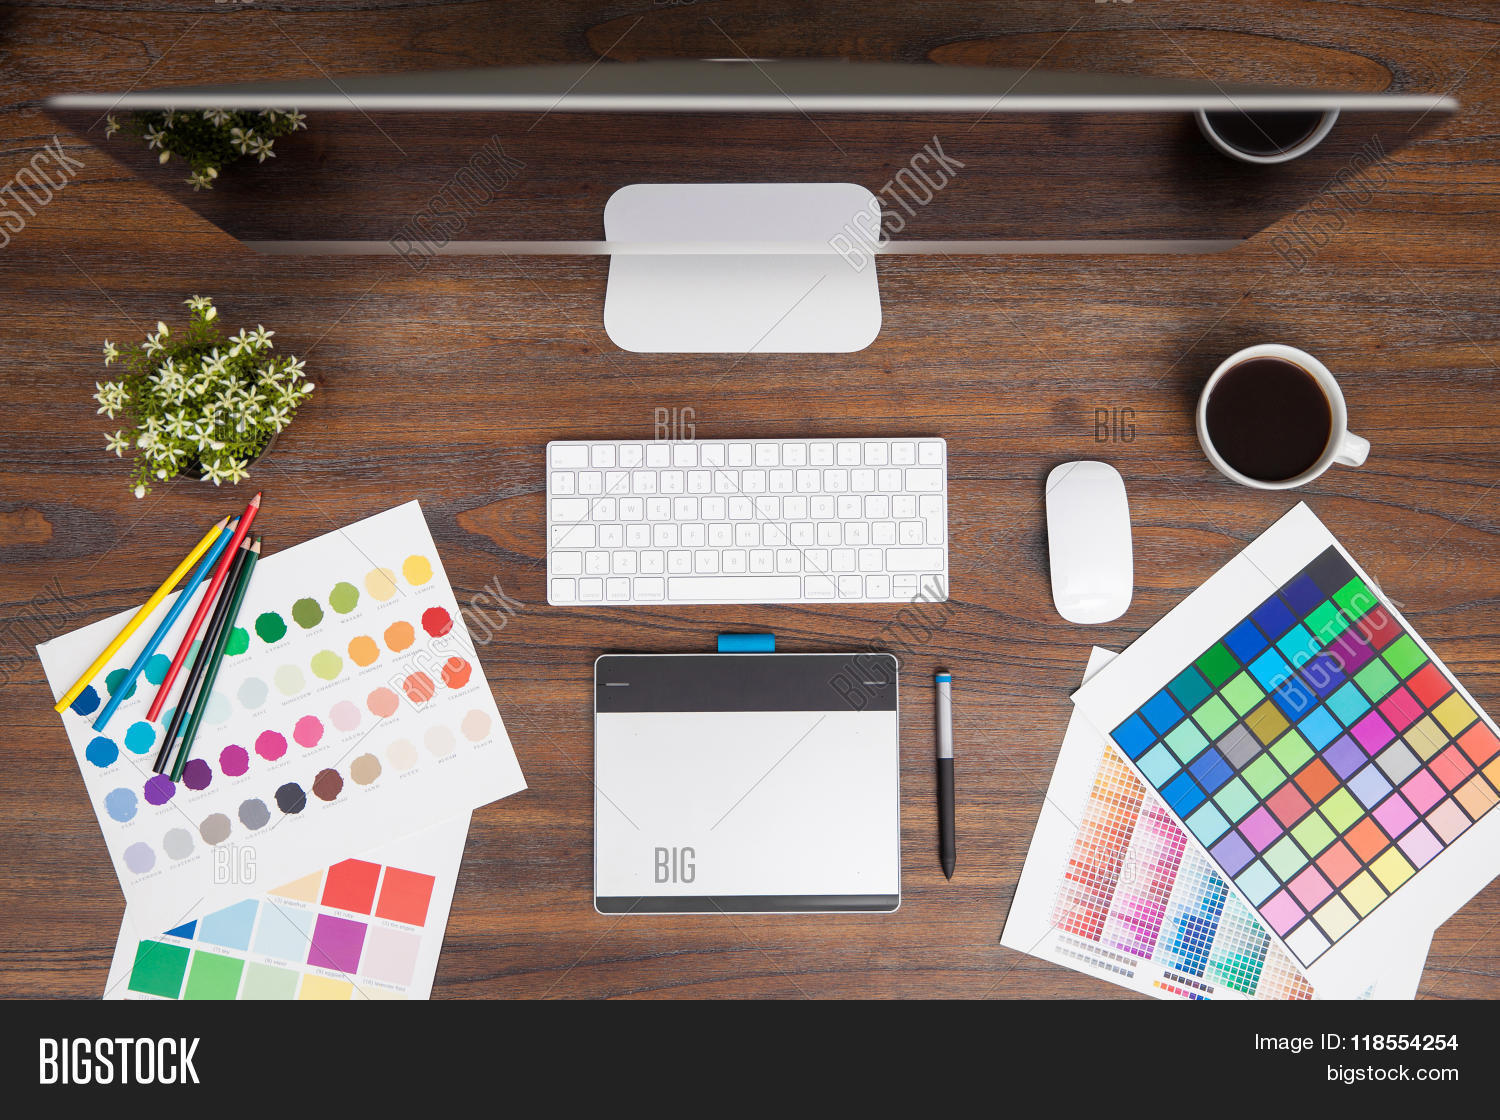 Designer Desk From Above Stock Photo & Stock Images | Bigstock